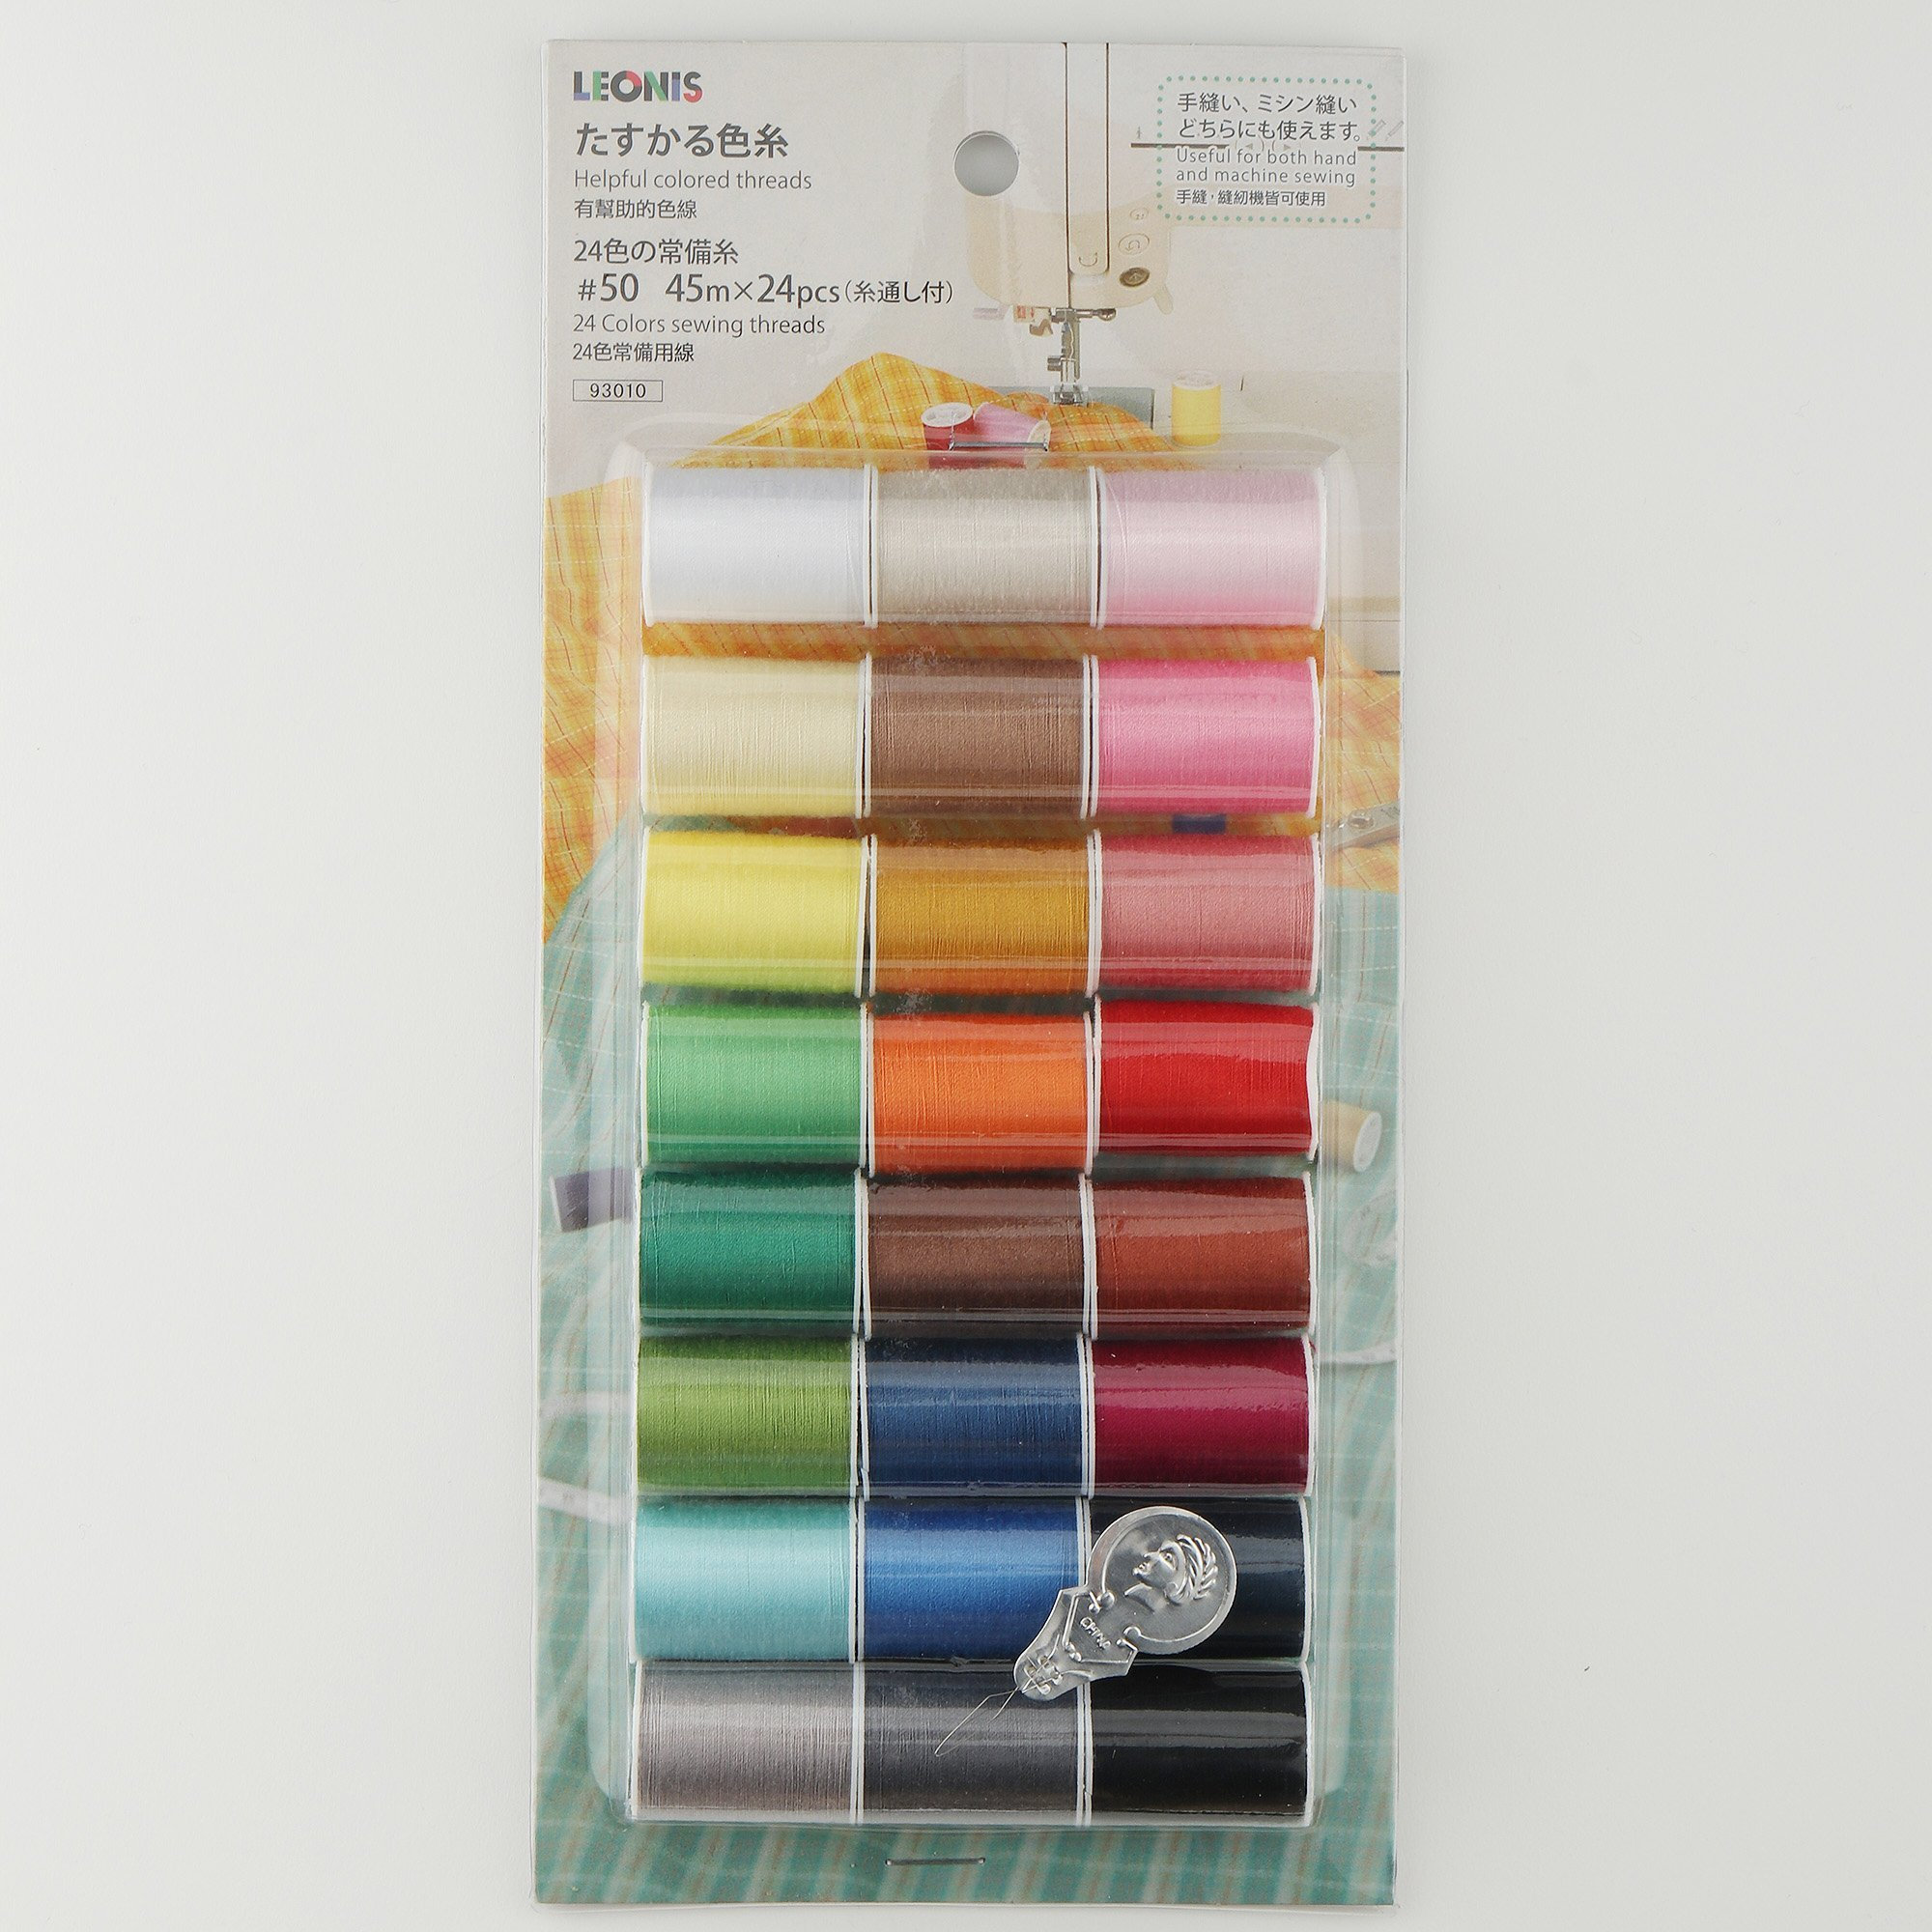 24 Color Handy Polyester Sewing Threads